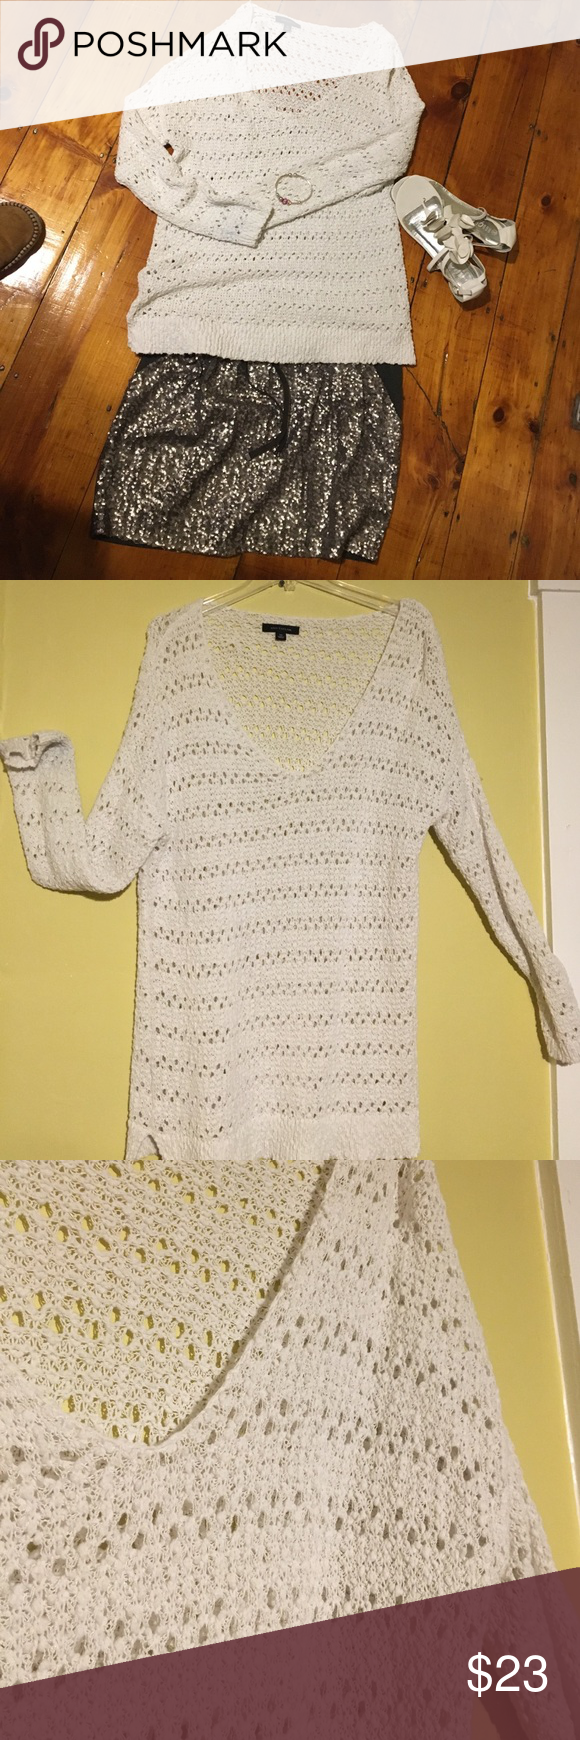 Very nice Ann Taylor Sweater This Ann Taylor sweater is in great used condition. Will need a camisole or t-shirt underneath. Perfect for the spring or summer 🌞 Ann Taylor Sweaters Crew & Scoop Necks